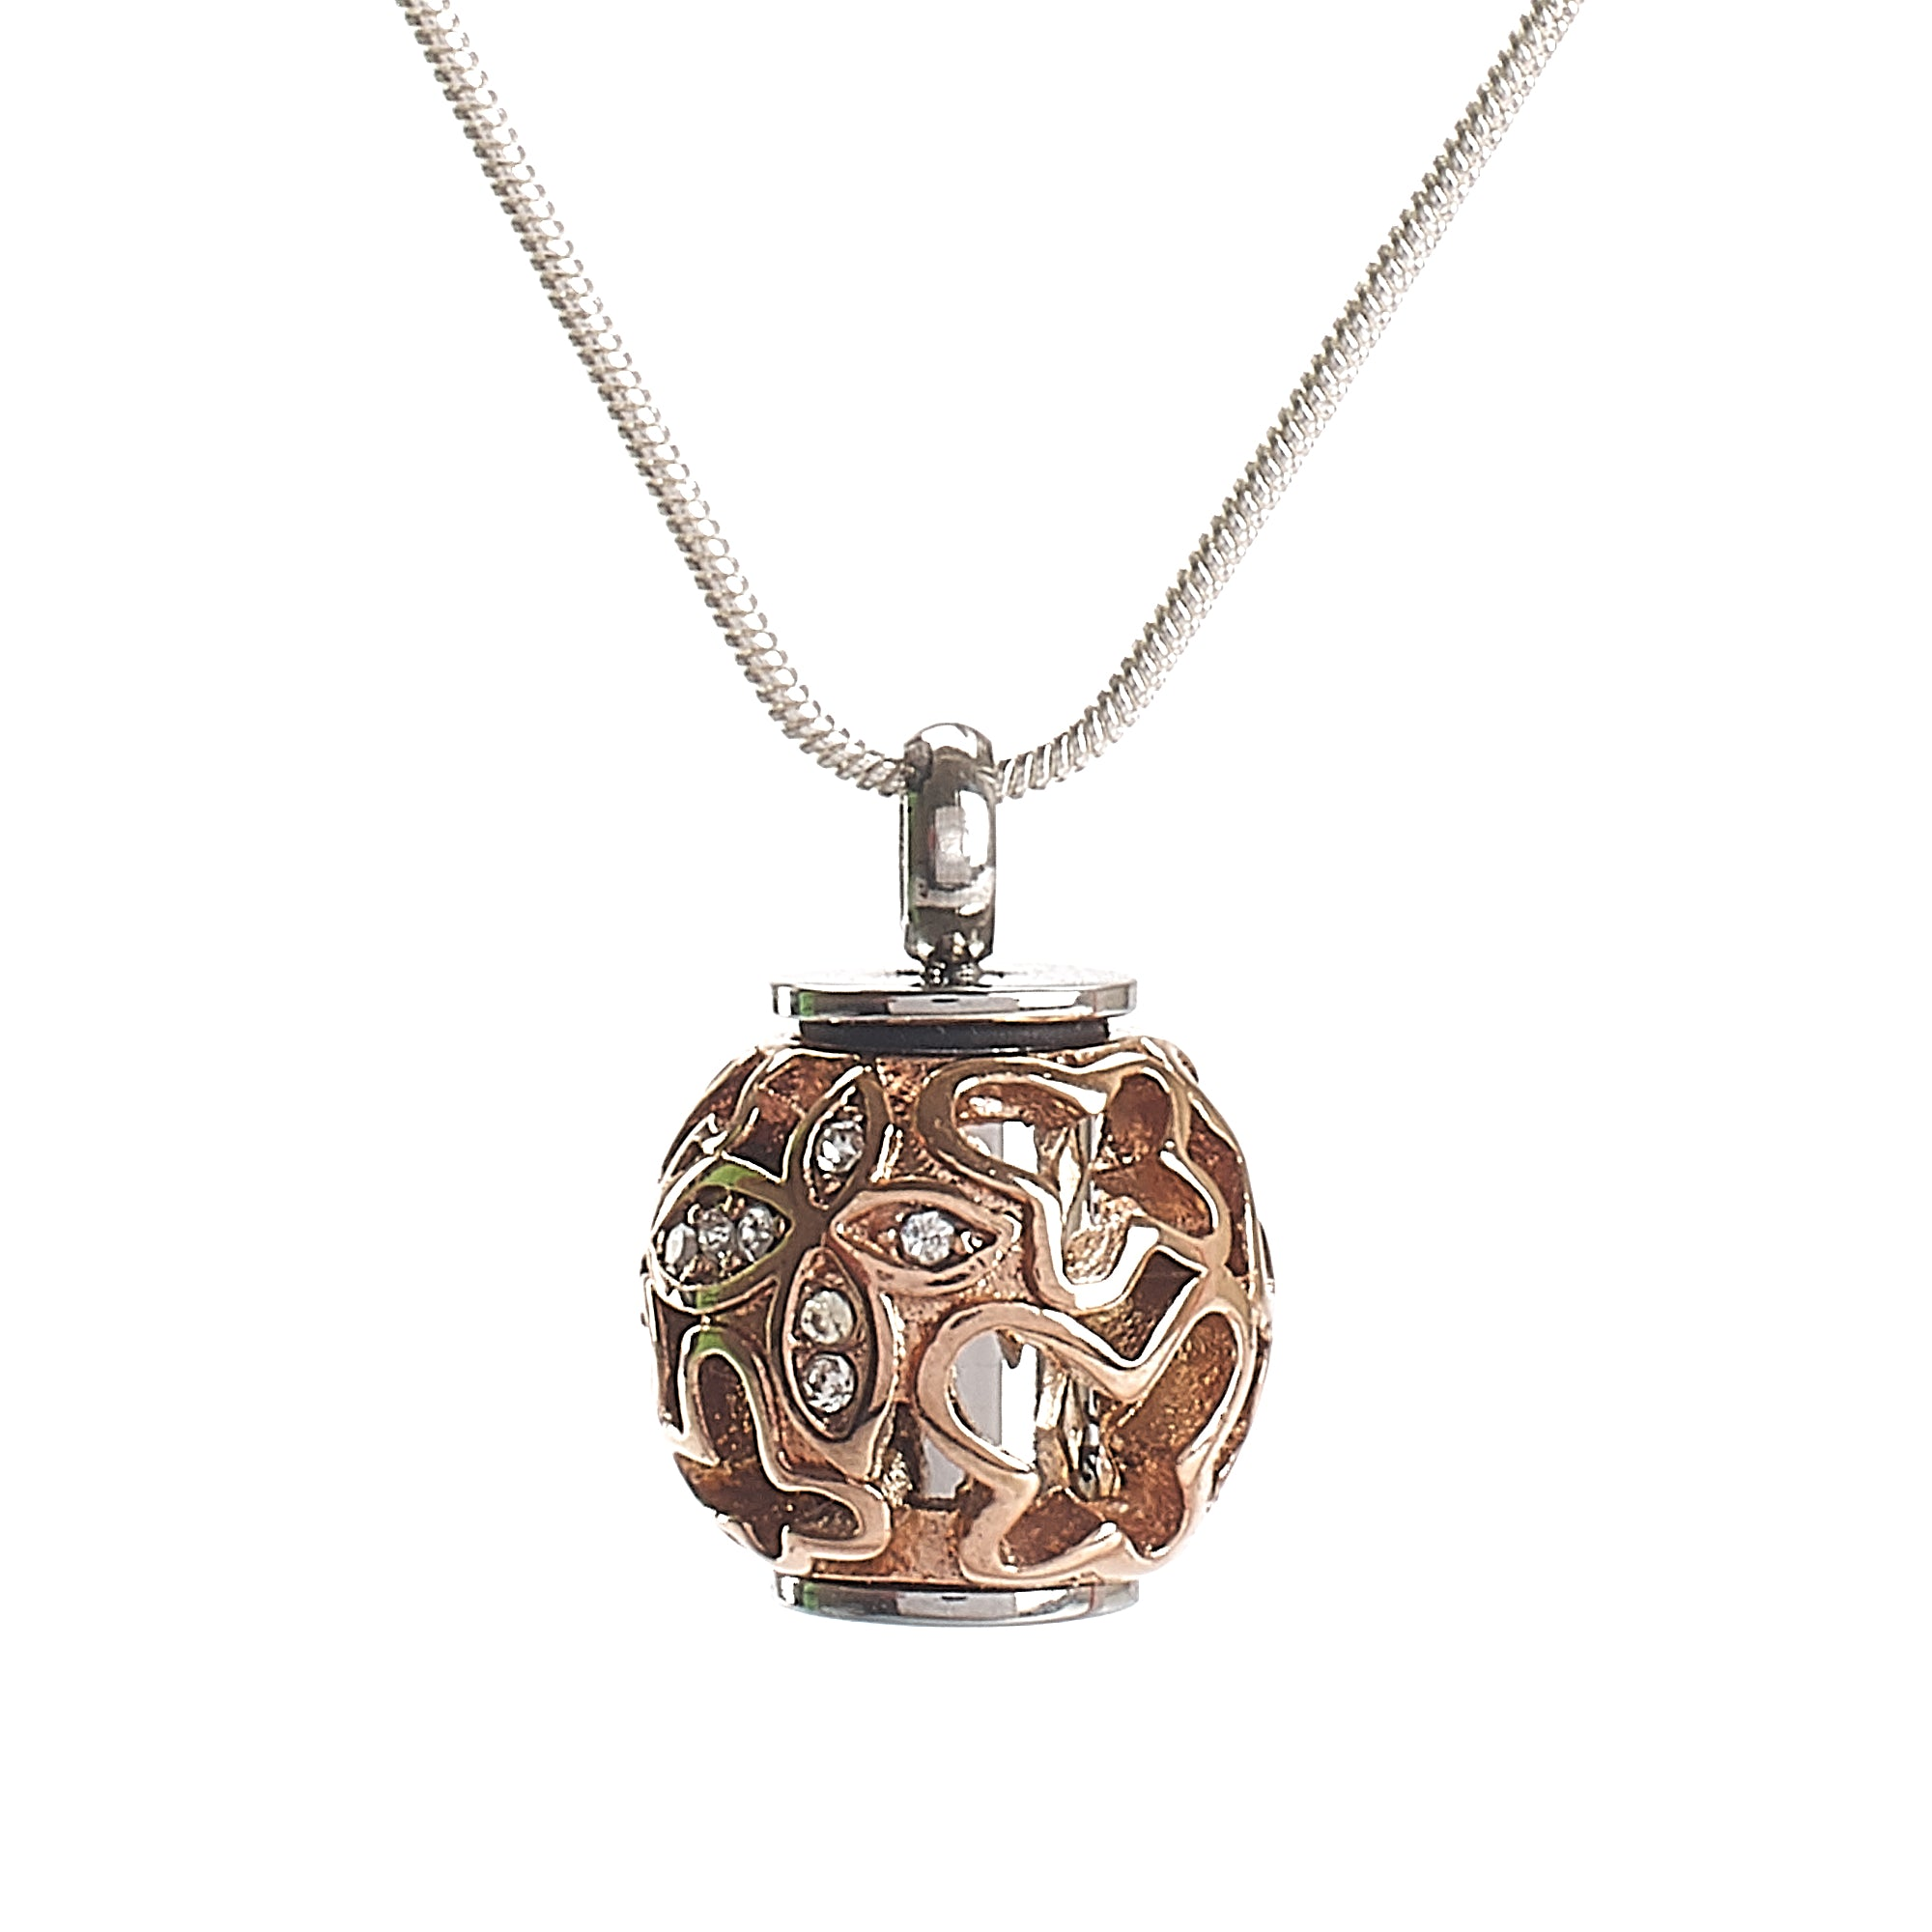 Cremation Pendant - Filigree Chime Ball - Rose Gold